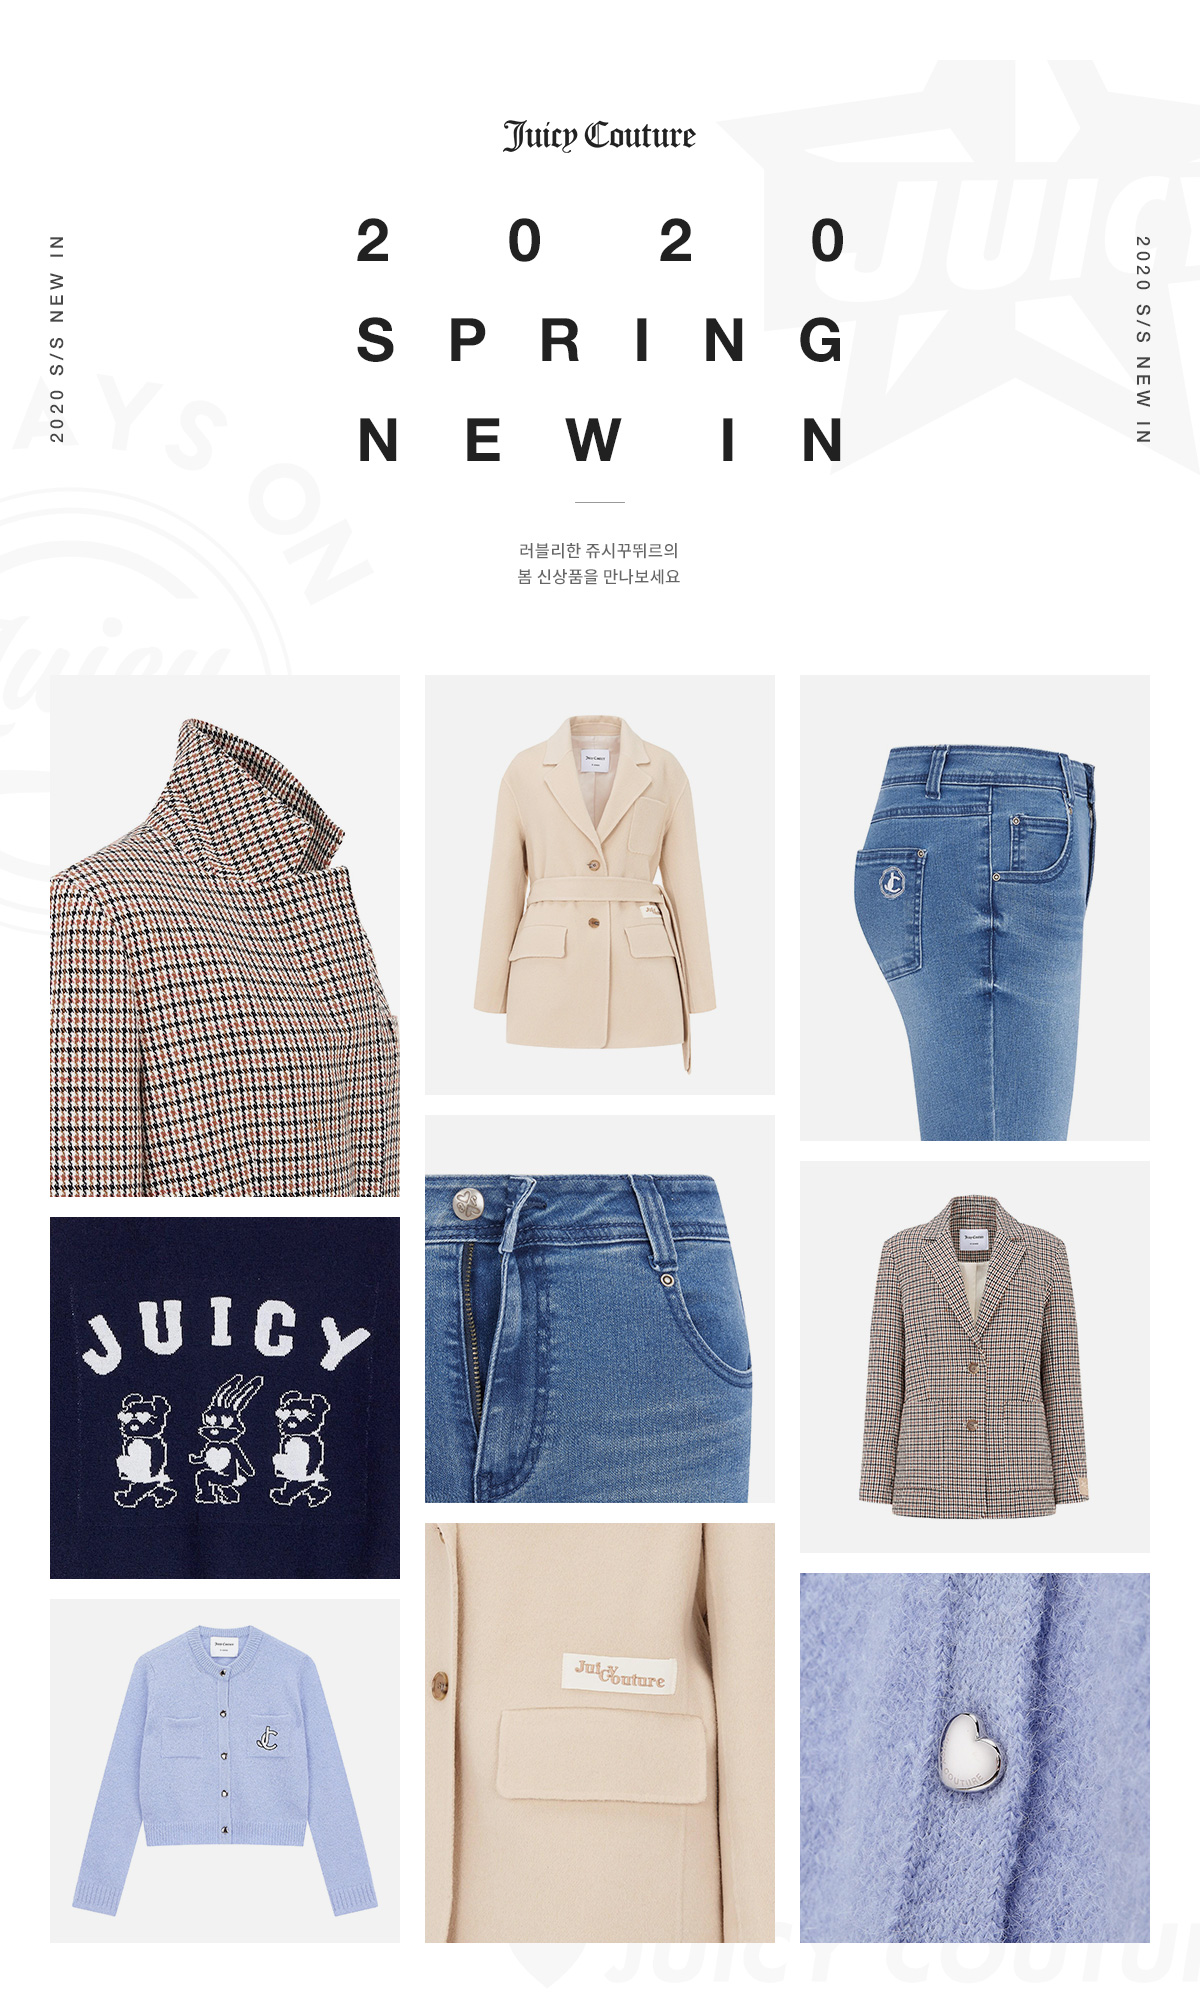 JUICY COUTURE 2020 SPRING NEW IN